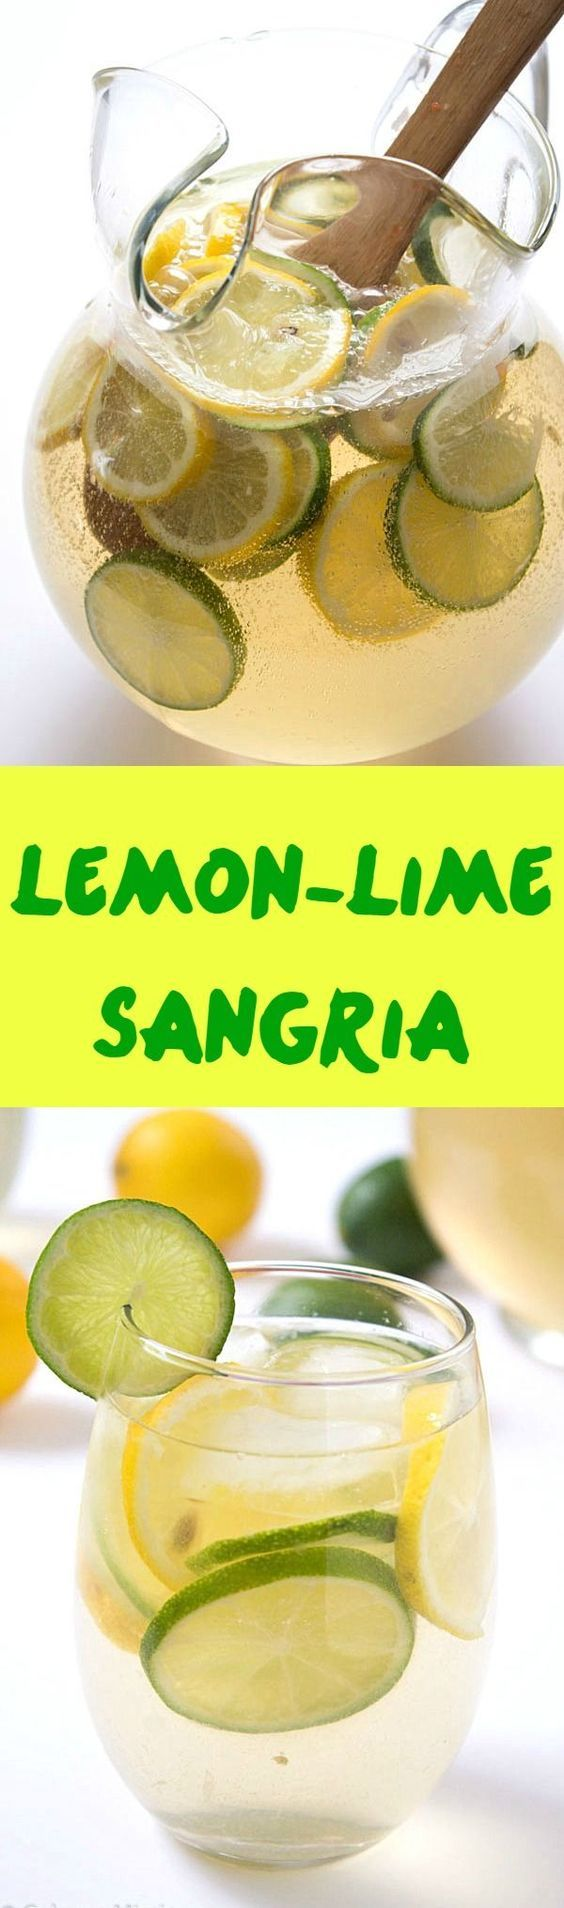 How to use water with lemon for weight loss ehow - Lemon Lime Sangria